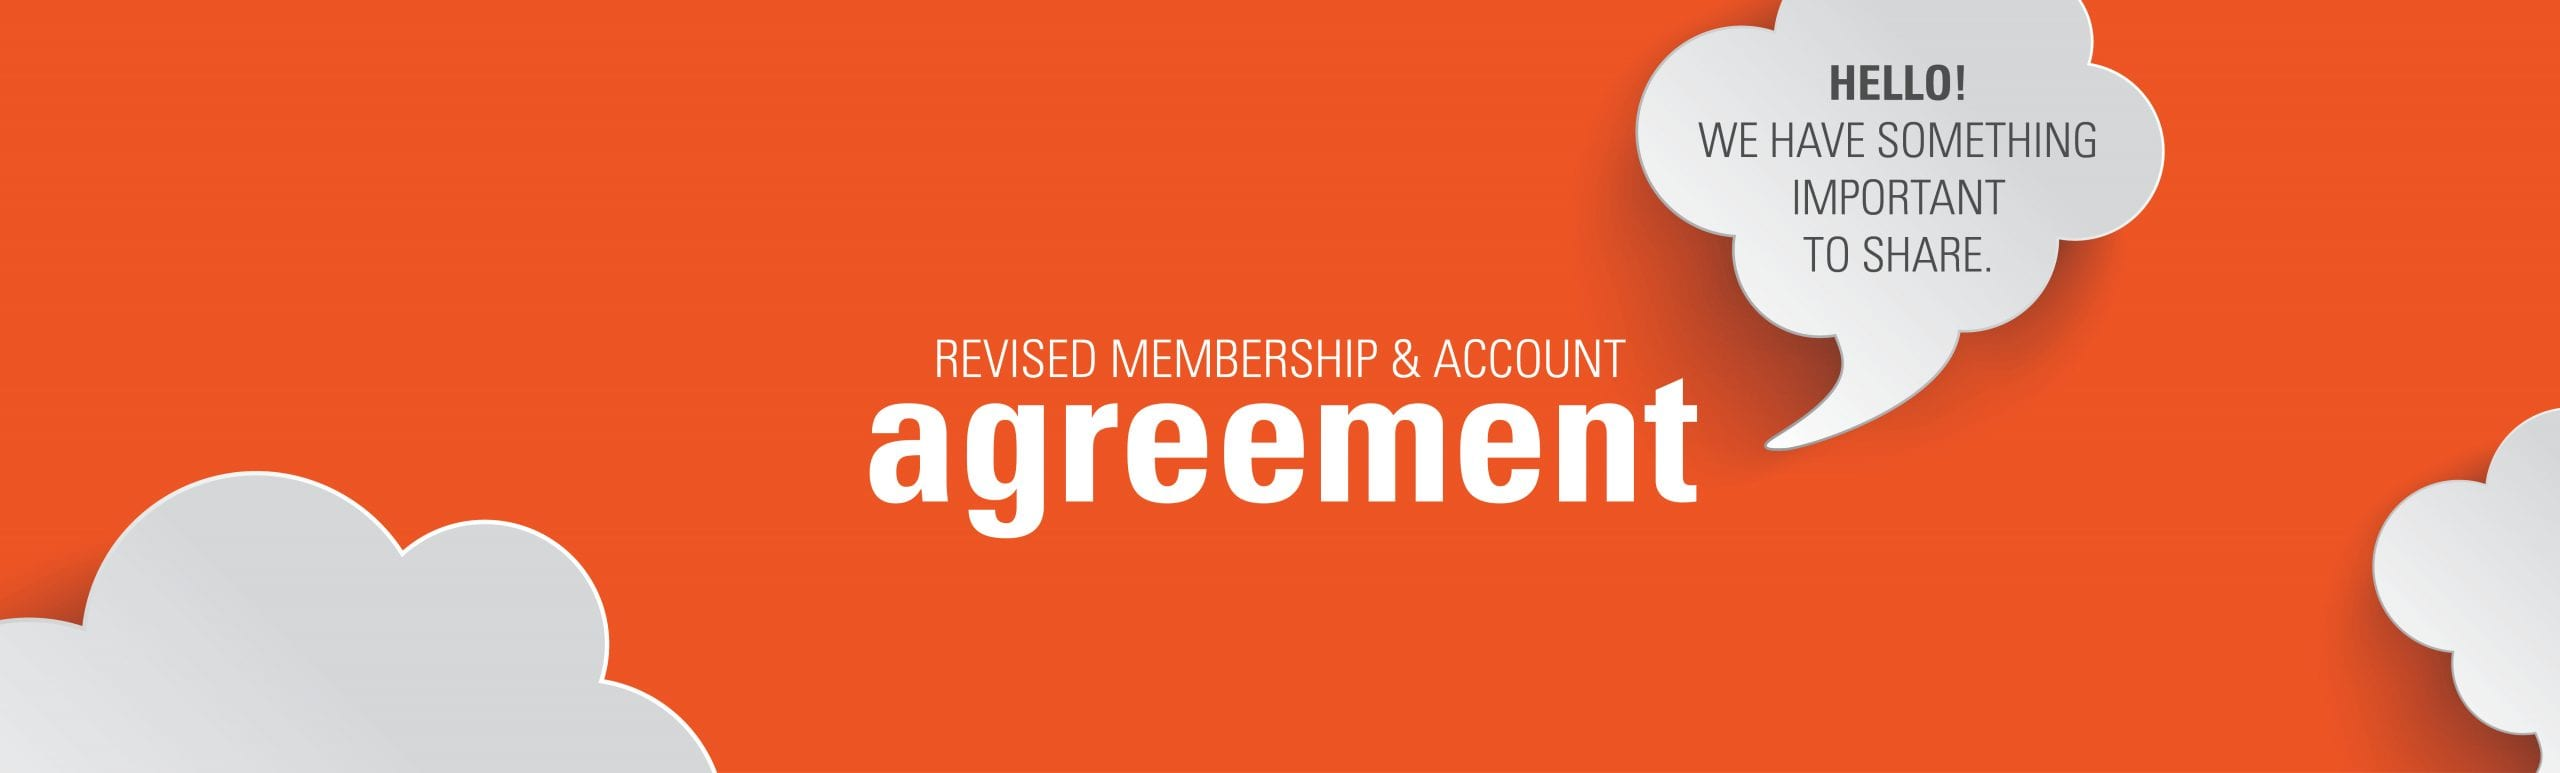 orange background with idea clouds pointing to writing that says revised membership agreement